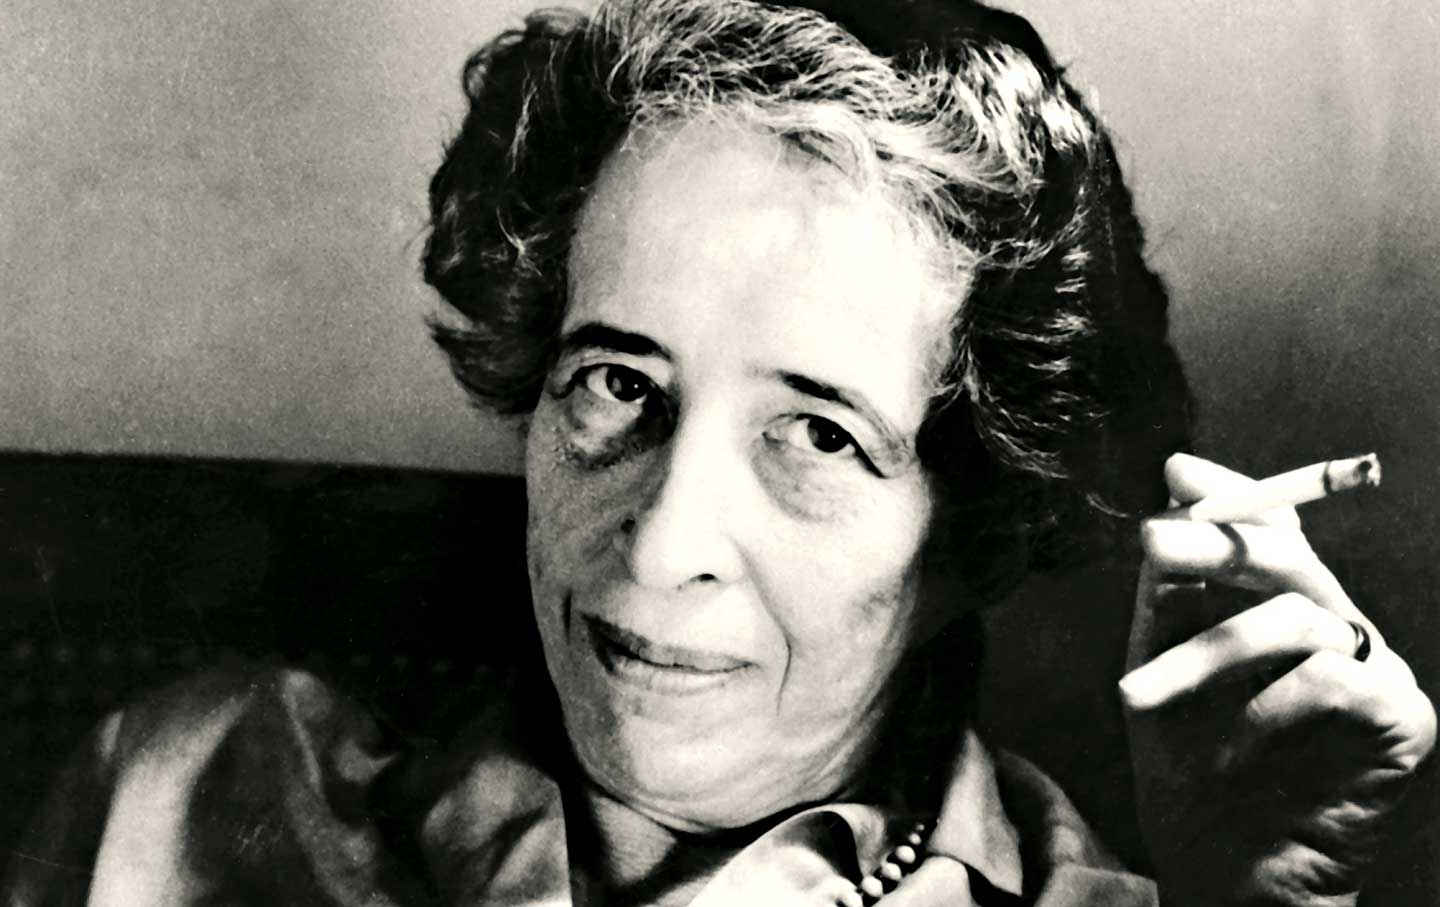 hannah arendt banality evil essay Essays and criticism on hannah arendt - critical essays and barry clarke examined arendt's representation of the banality of evil access our hannah arendt.